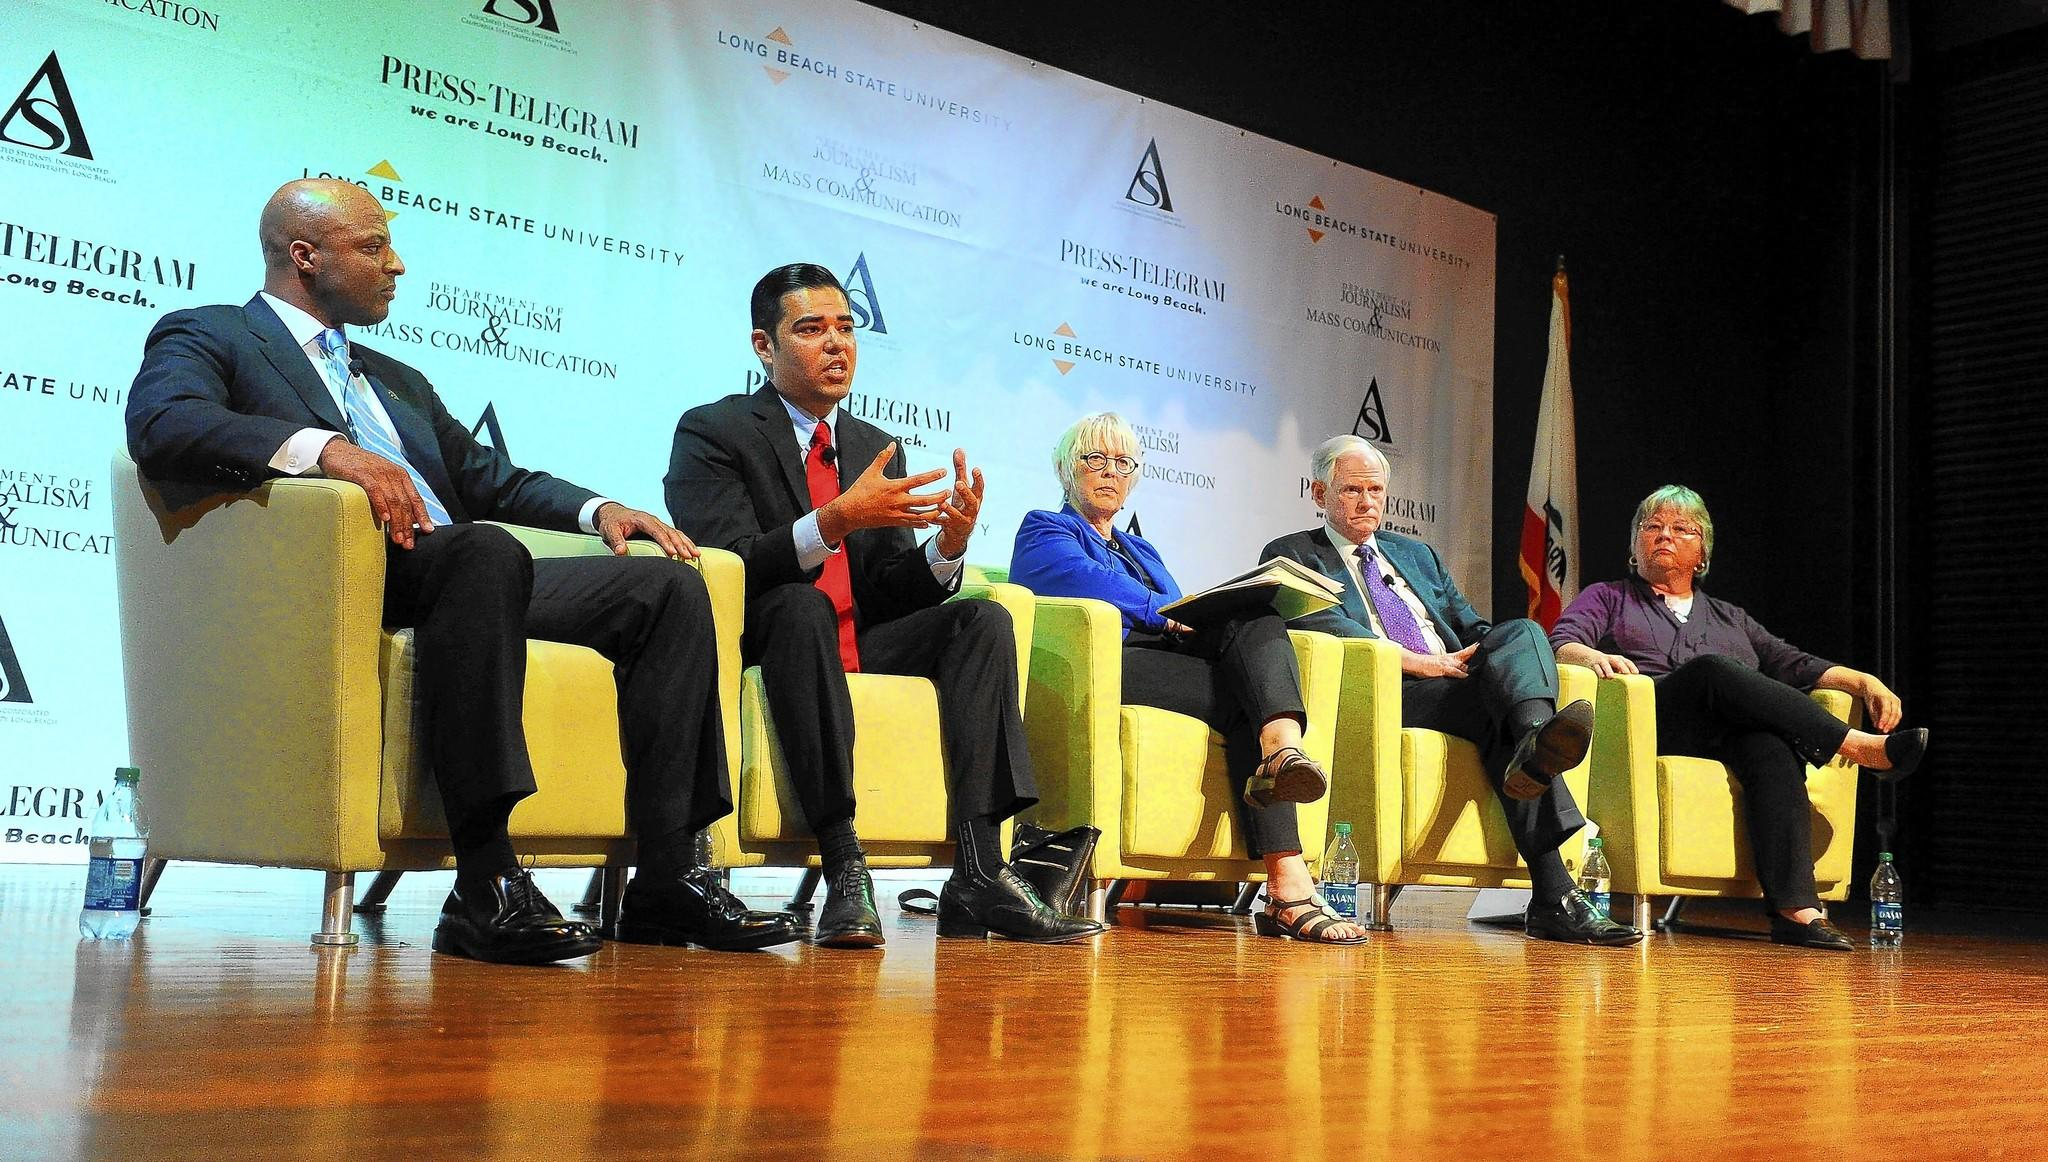 Long Beach mayoral candidates participate in a debate at Cal State Long Beach. From left: Damon Dunn, Robert Garcia, Bonnie Lowenthal, Doug Otto and Gerrie Schipske.